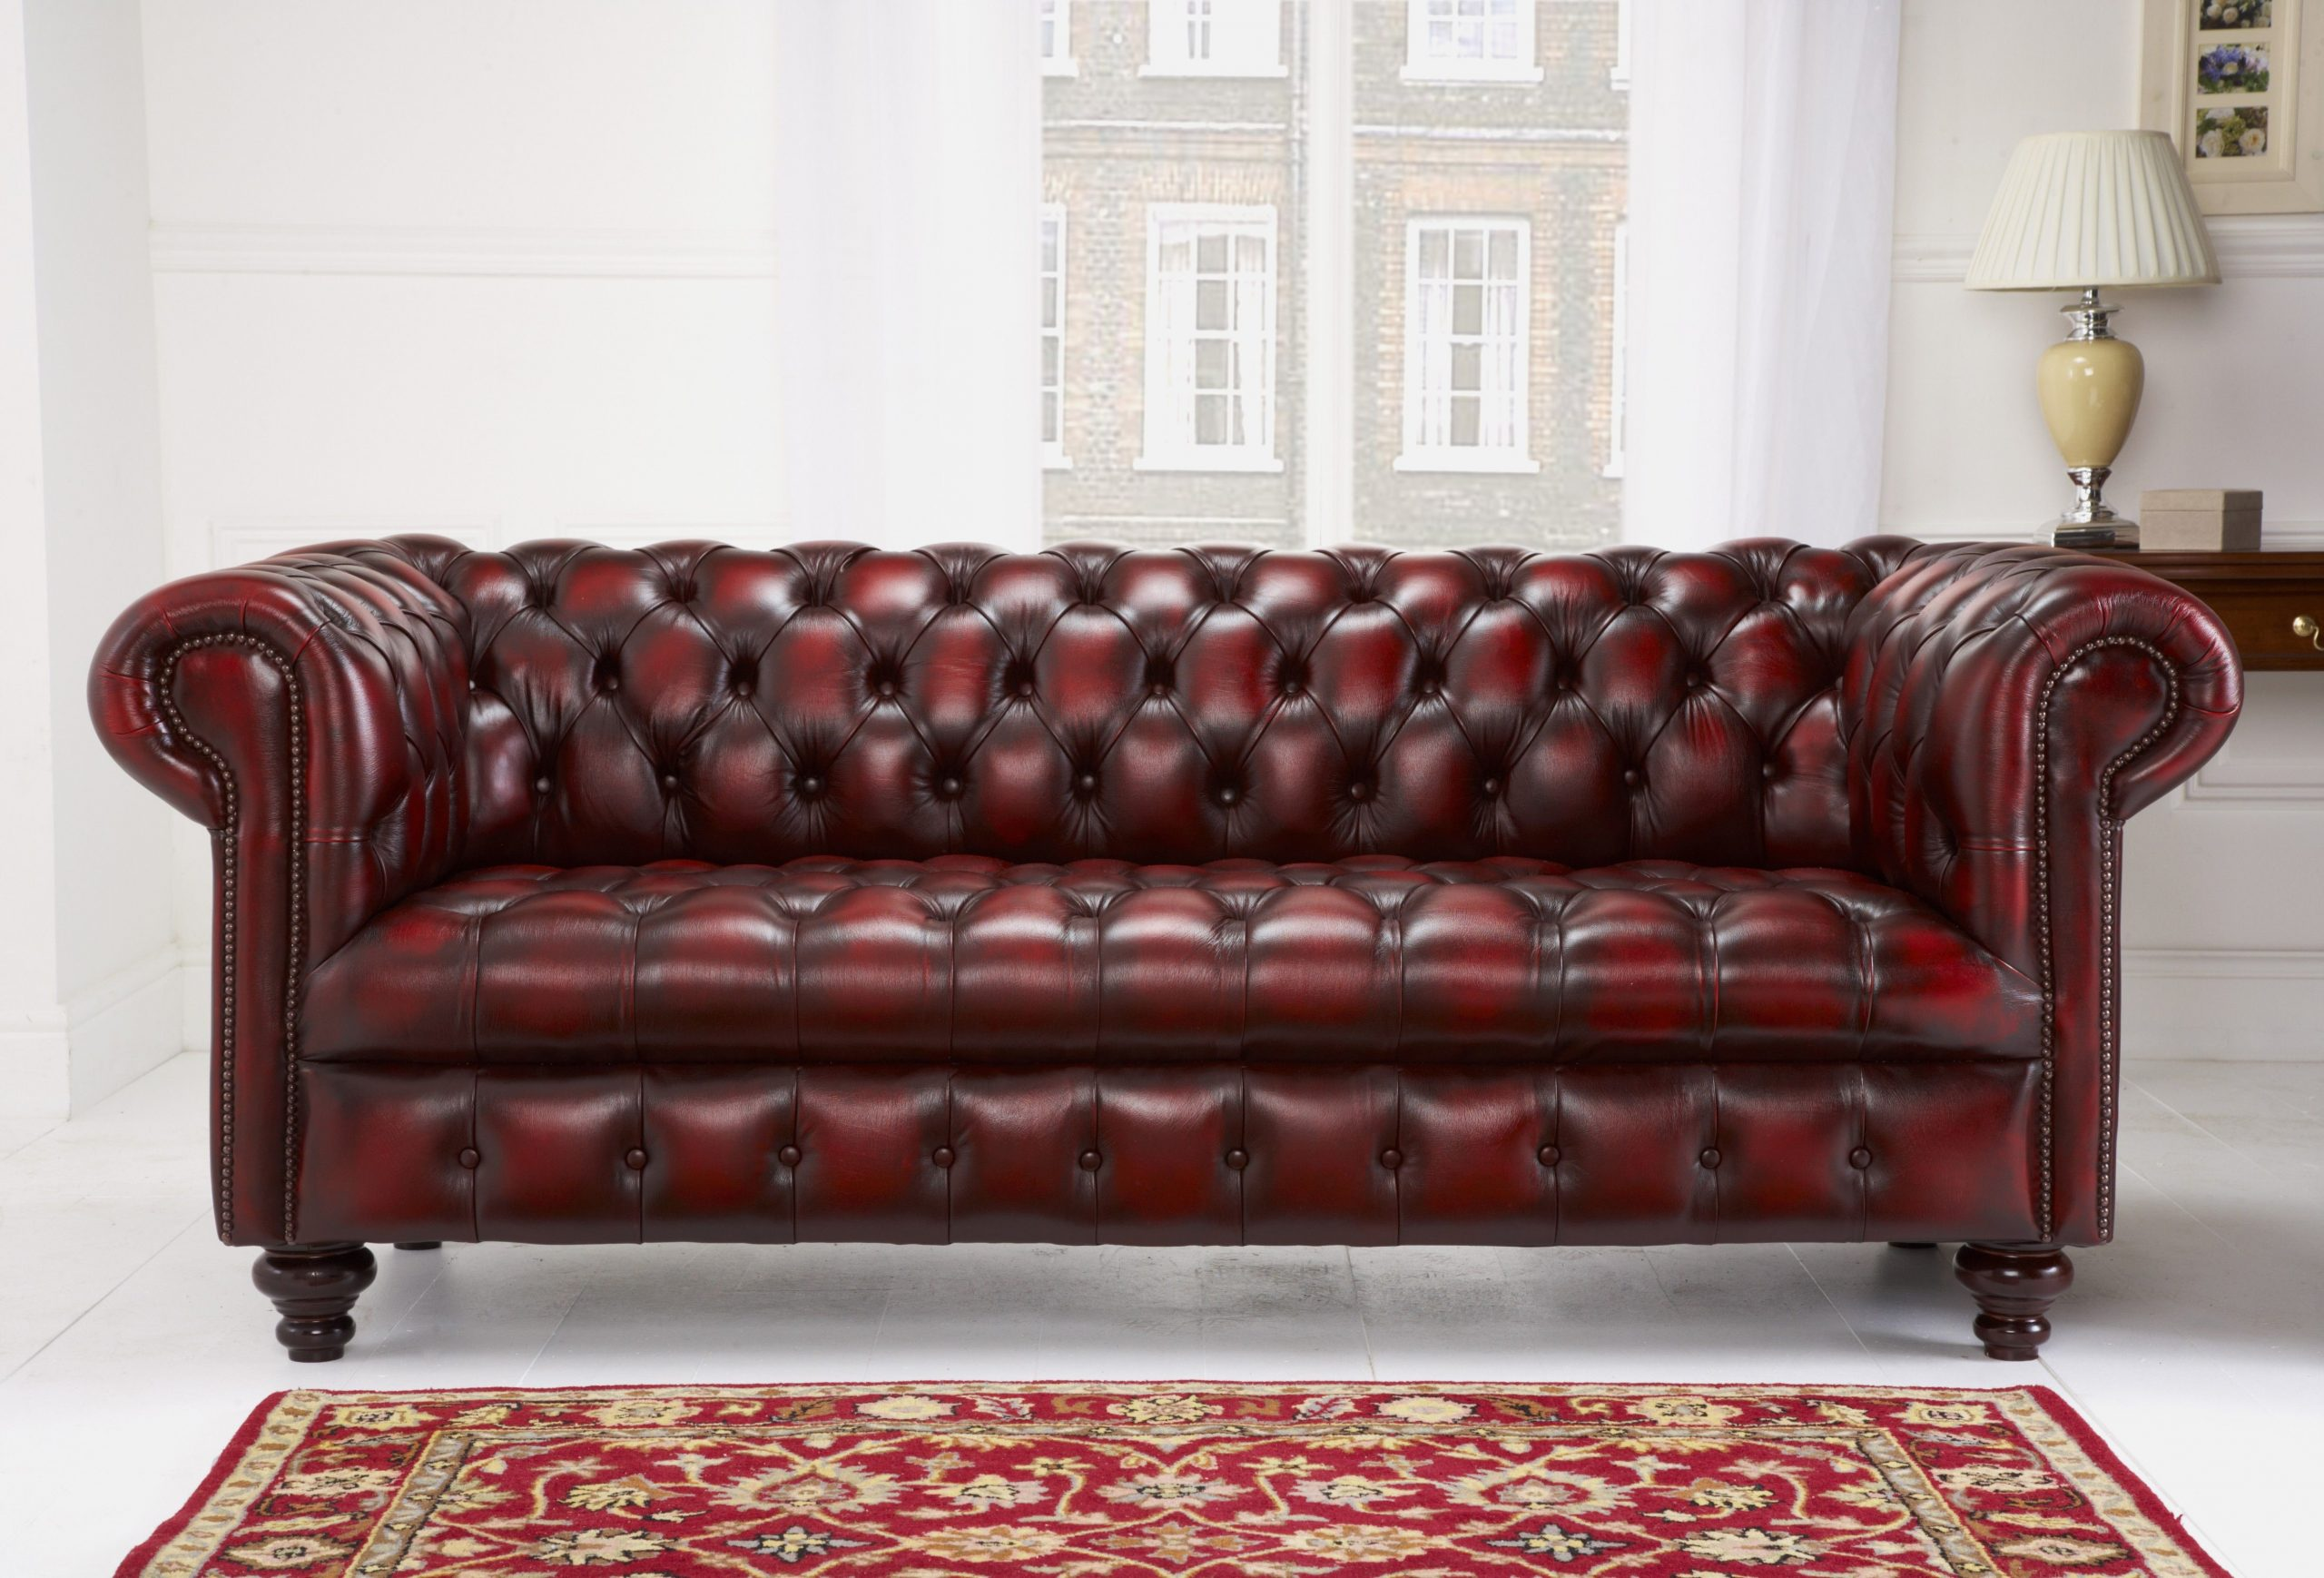 Our selection of furniture come in leather, fabric, bonded leather and other man made materials. Elegant Cherry Red Leather Sofa , Best Cherry Red Leather ...